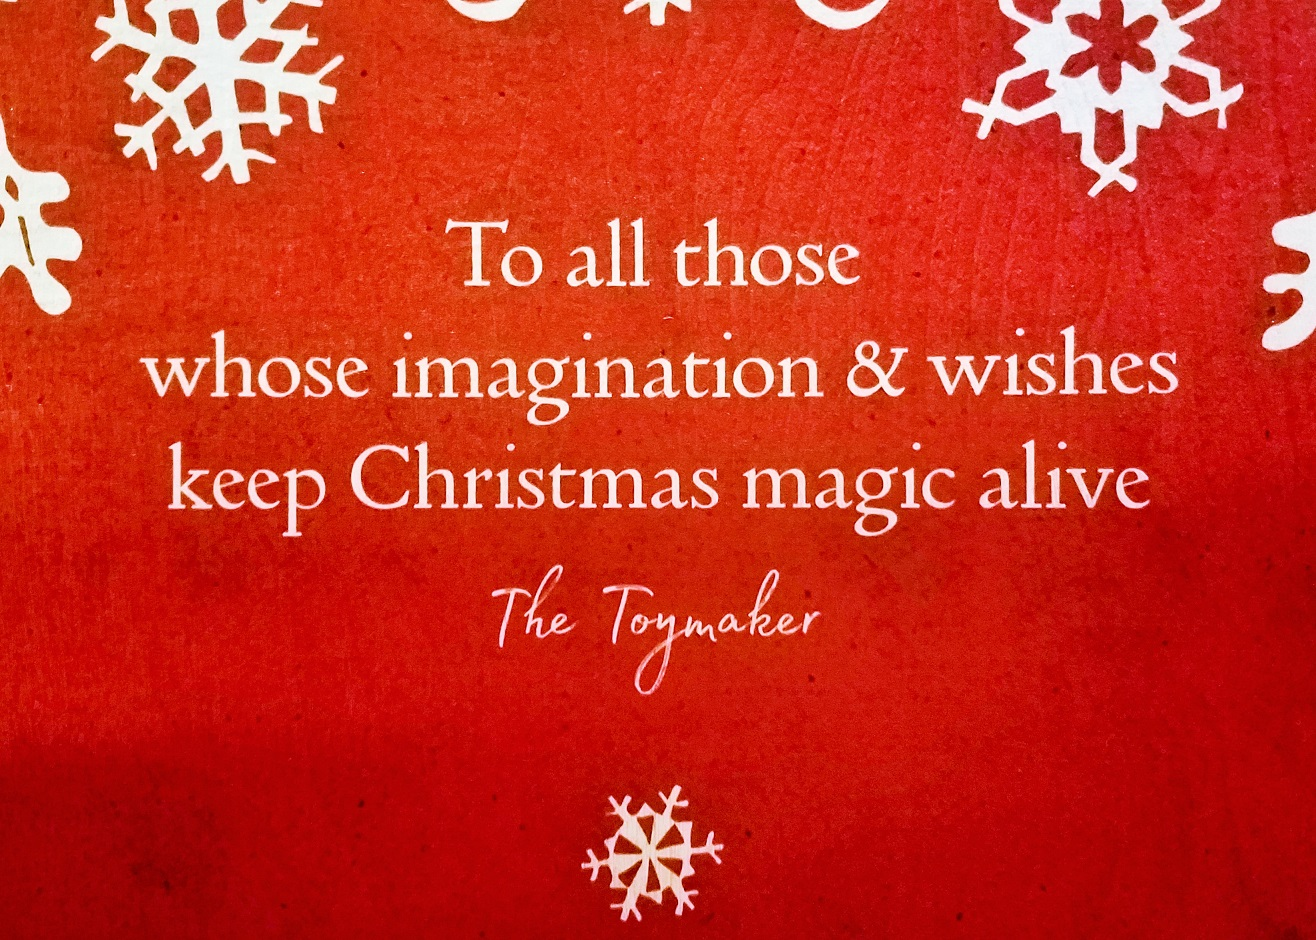 Lapland UK Quote about Christmas Magic Wishes